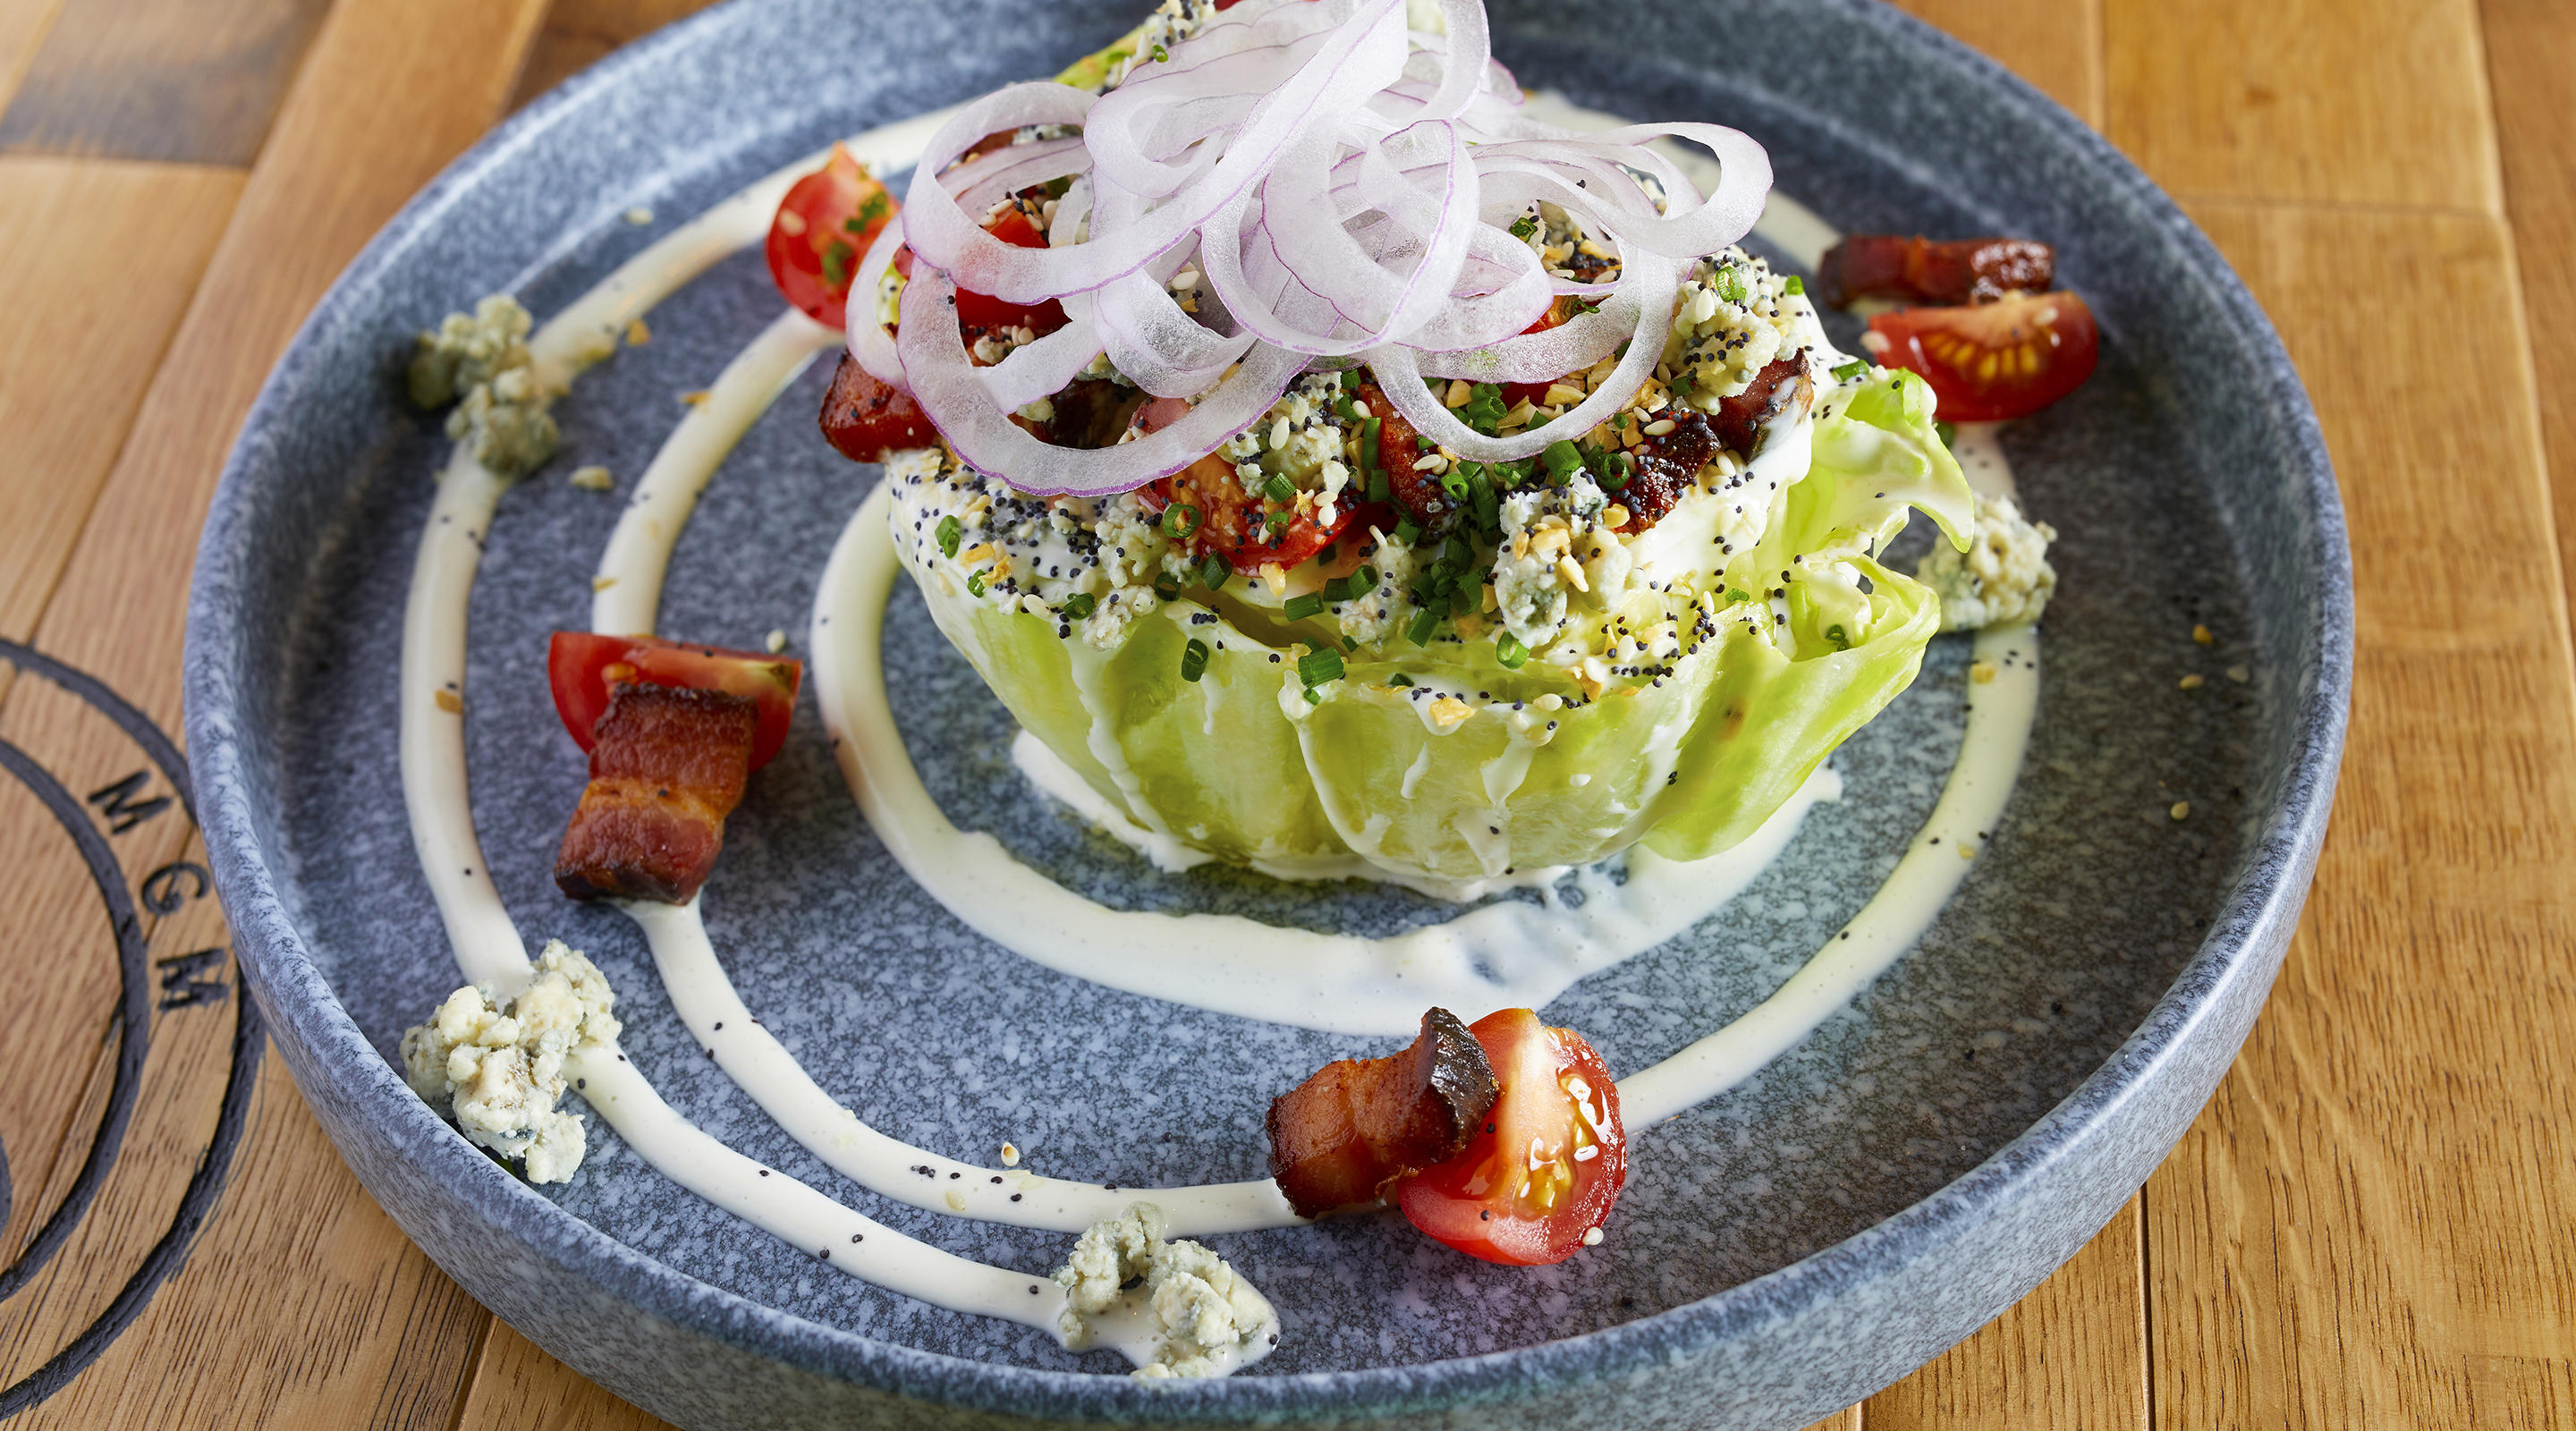 Our wedge salad is topped with great flavored.